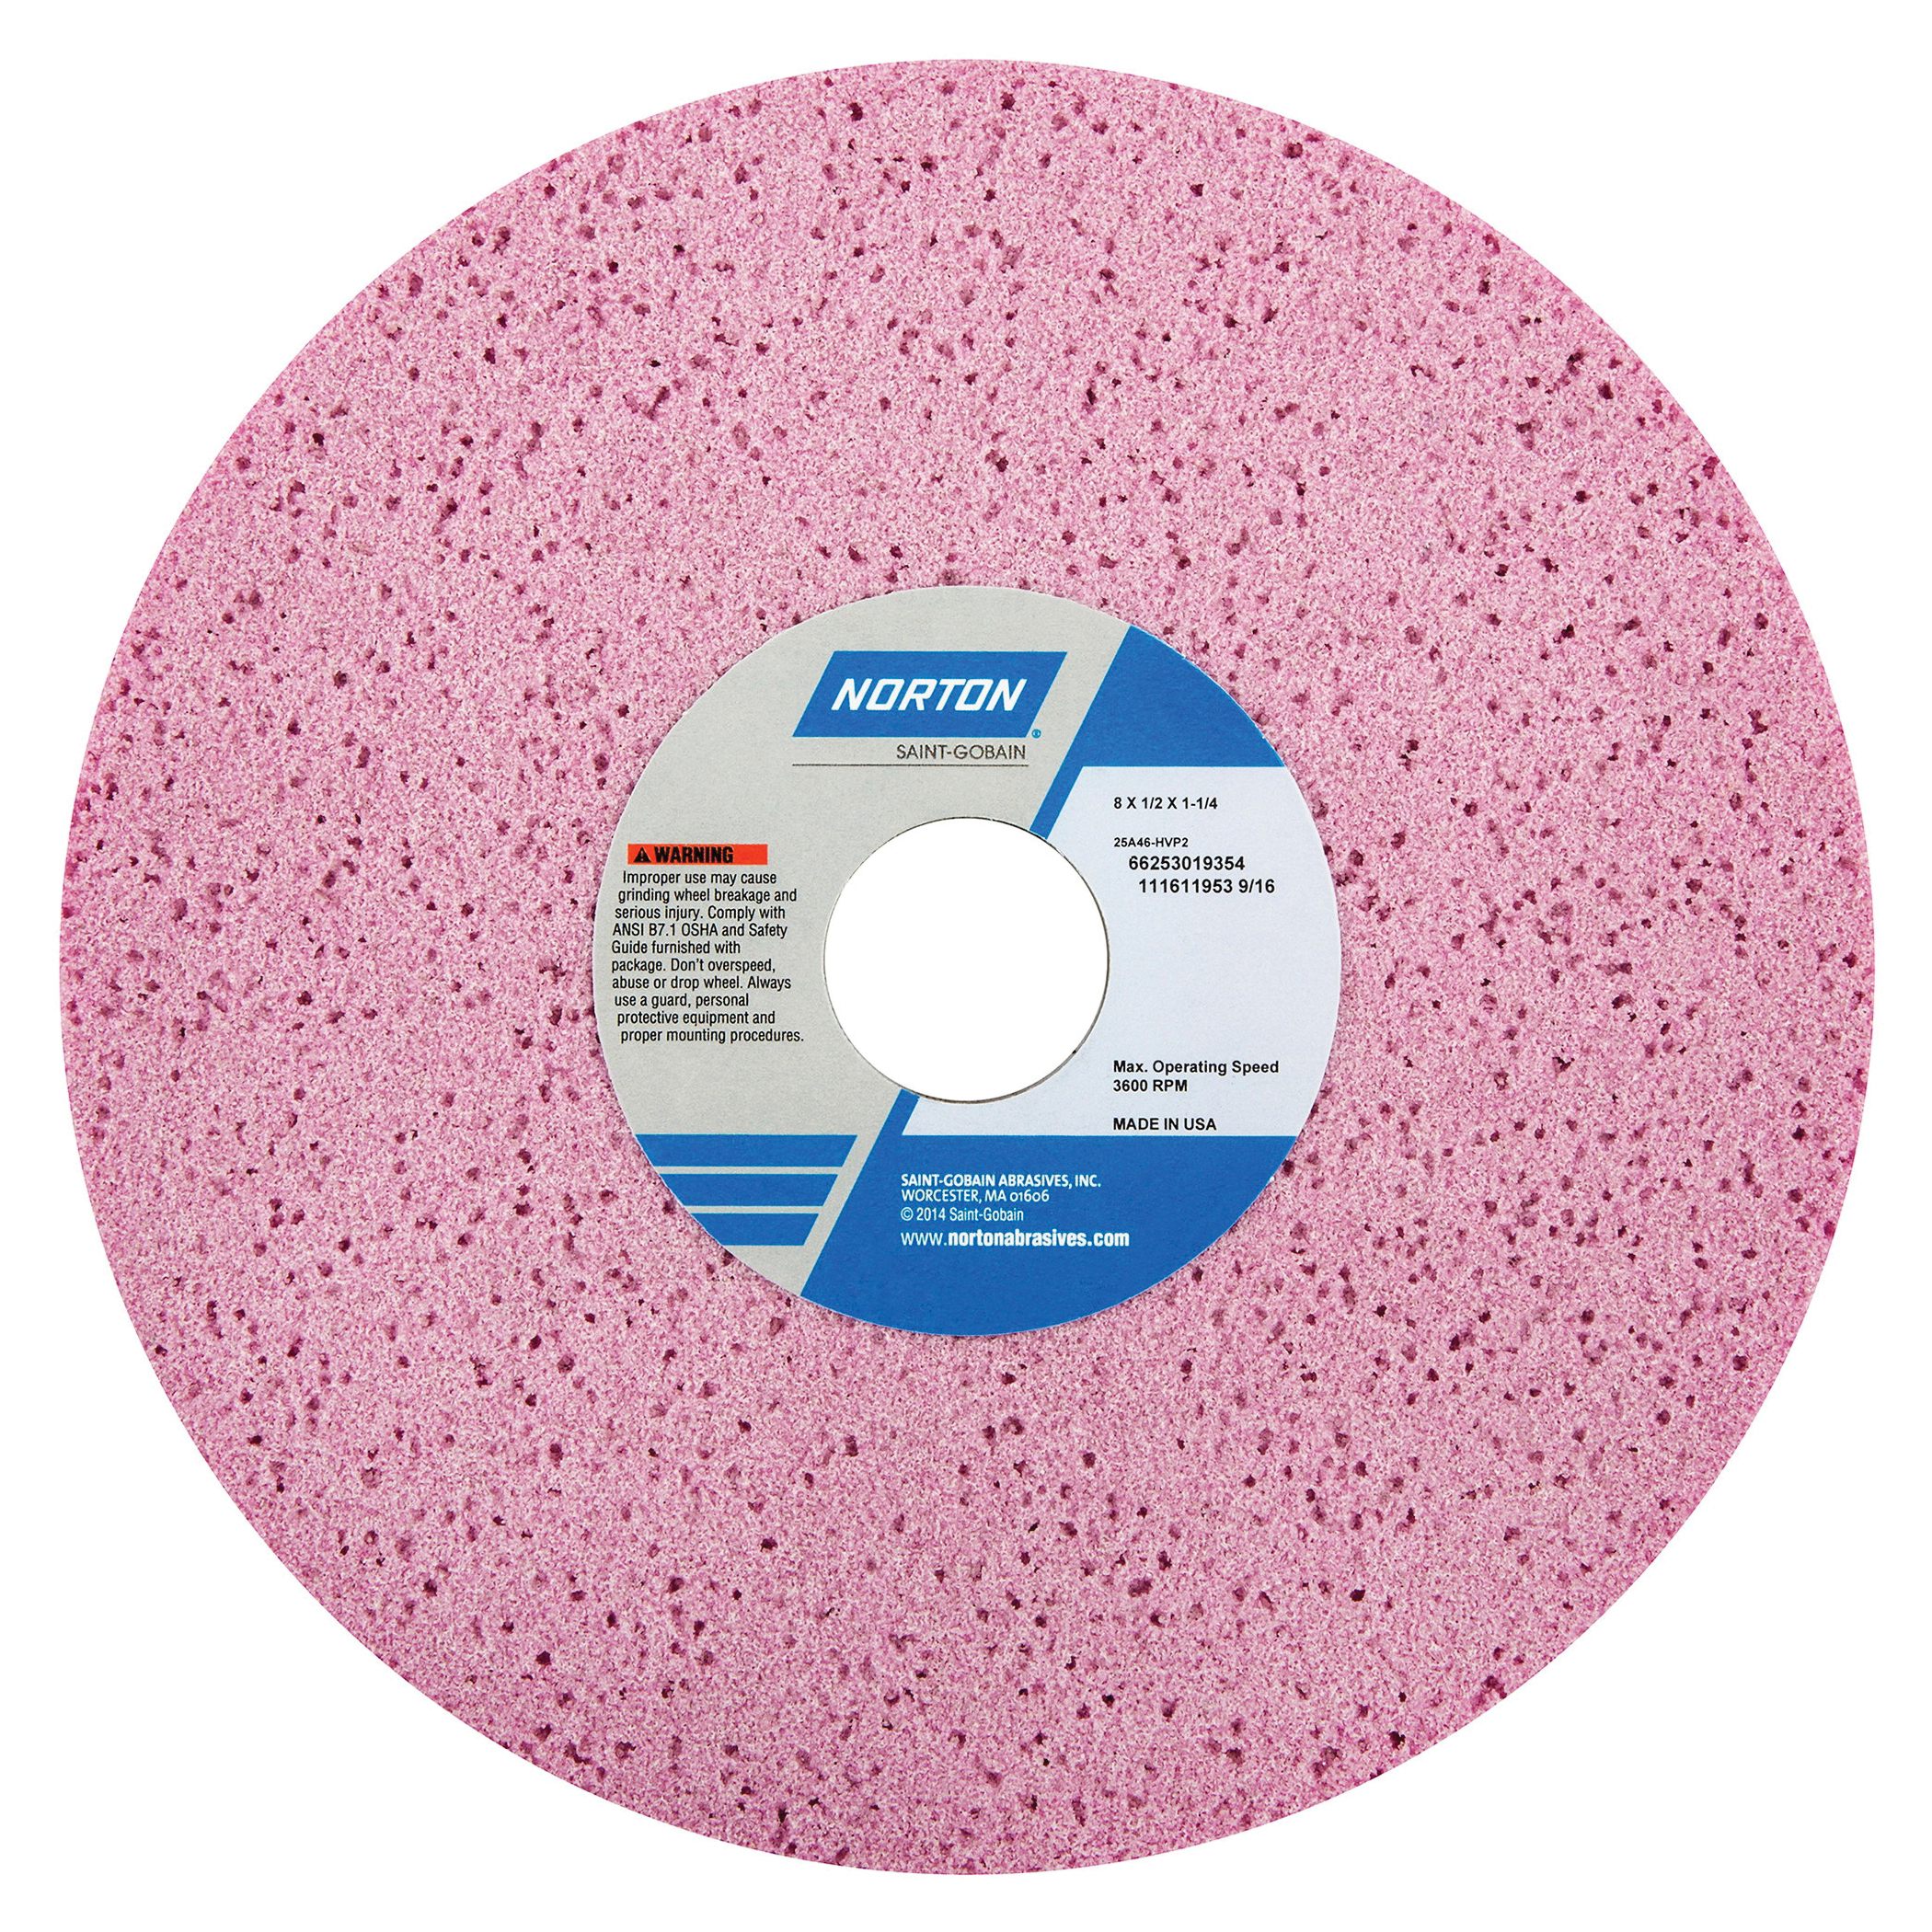 Norton® 66253019354 25A Straight Toolroom Wheel, 8 in Dia x 1/2 in THK, 1-1/4 in Center Hole, 46 Grit, Aluminum Oxide Abrasive